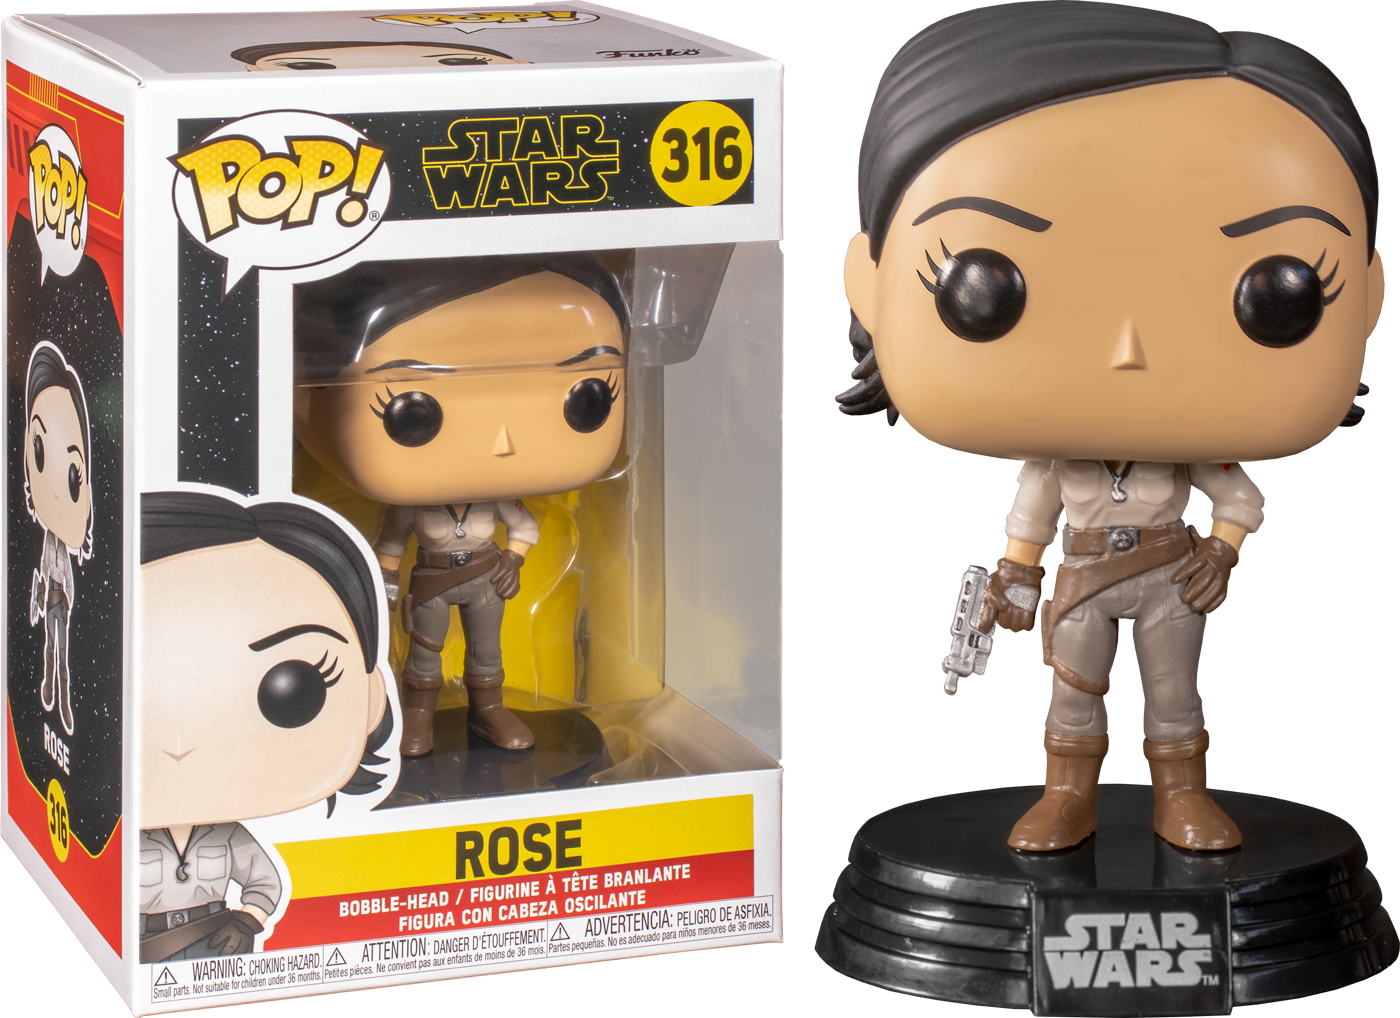 Star Wars Rise Of Skywalker Rose Funko Pop Vinyl Figure Pop Addiction Funko Pop Collectables Merchandise Comics And Much More From The Geek World